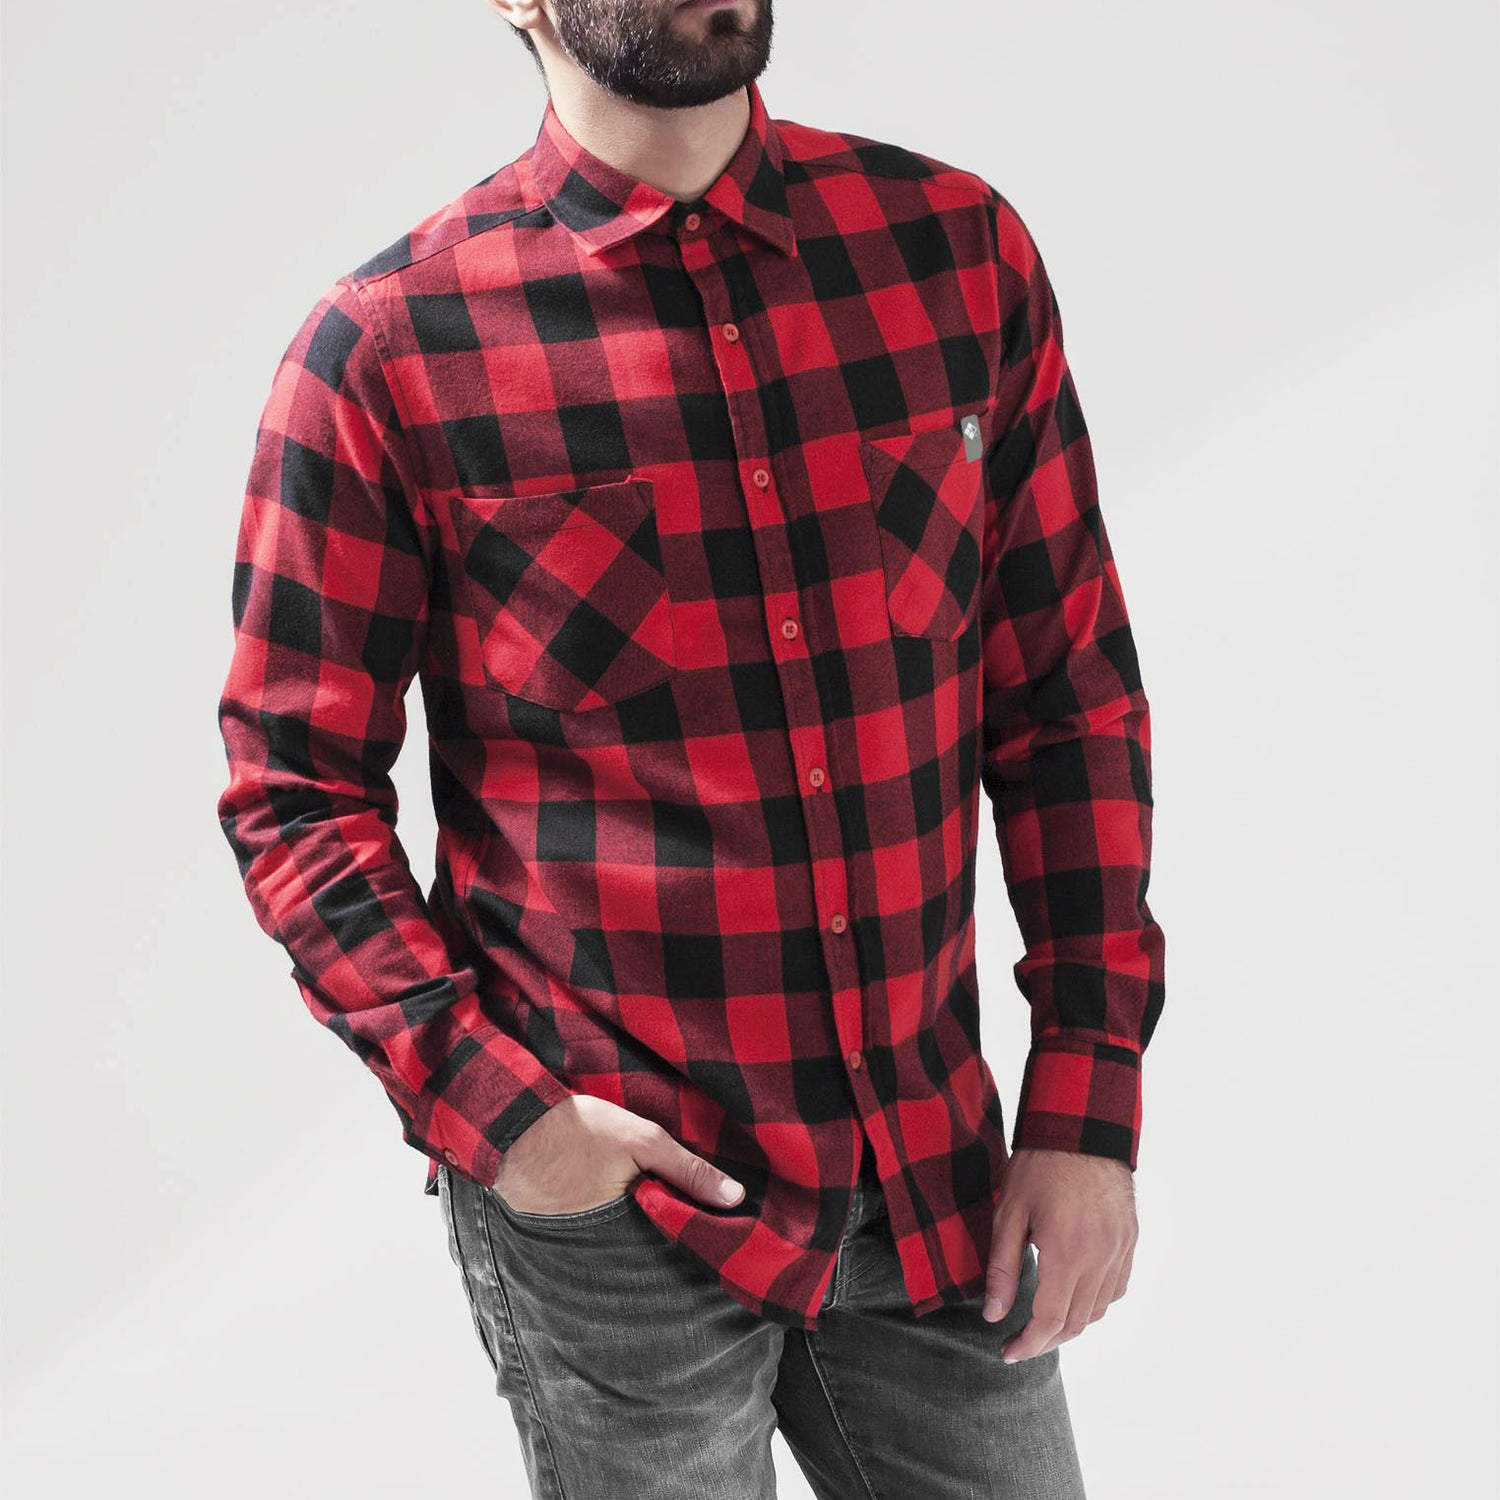 Image of Cromford Flannel Checked Shirt in RedBlk